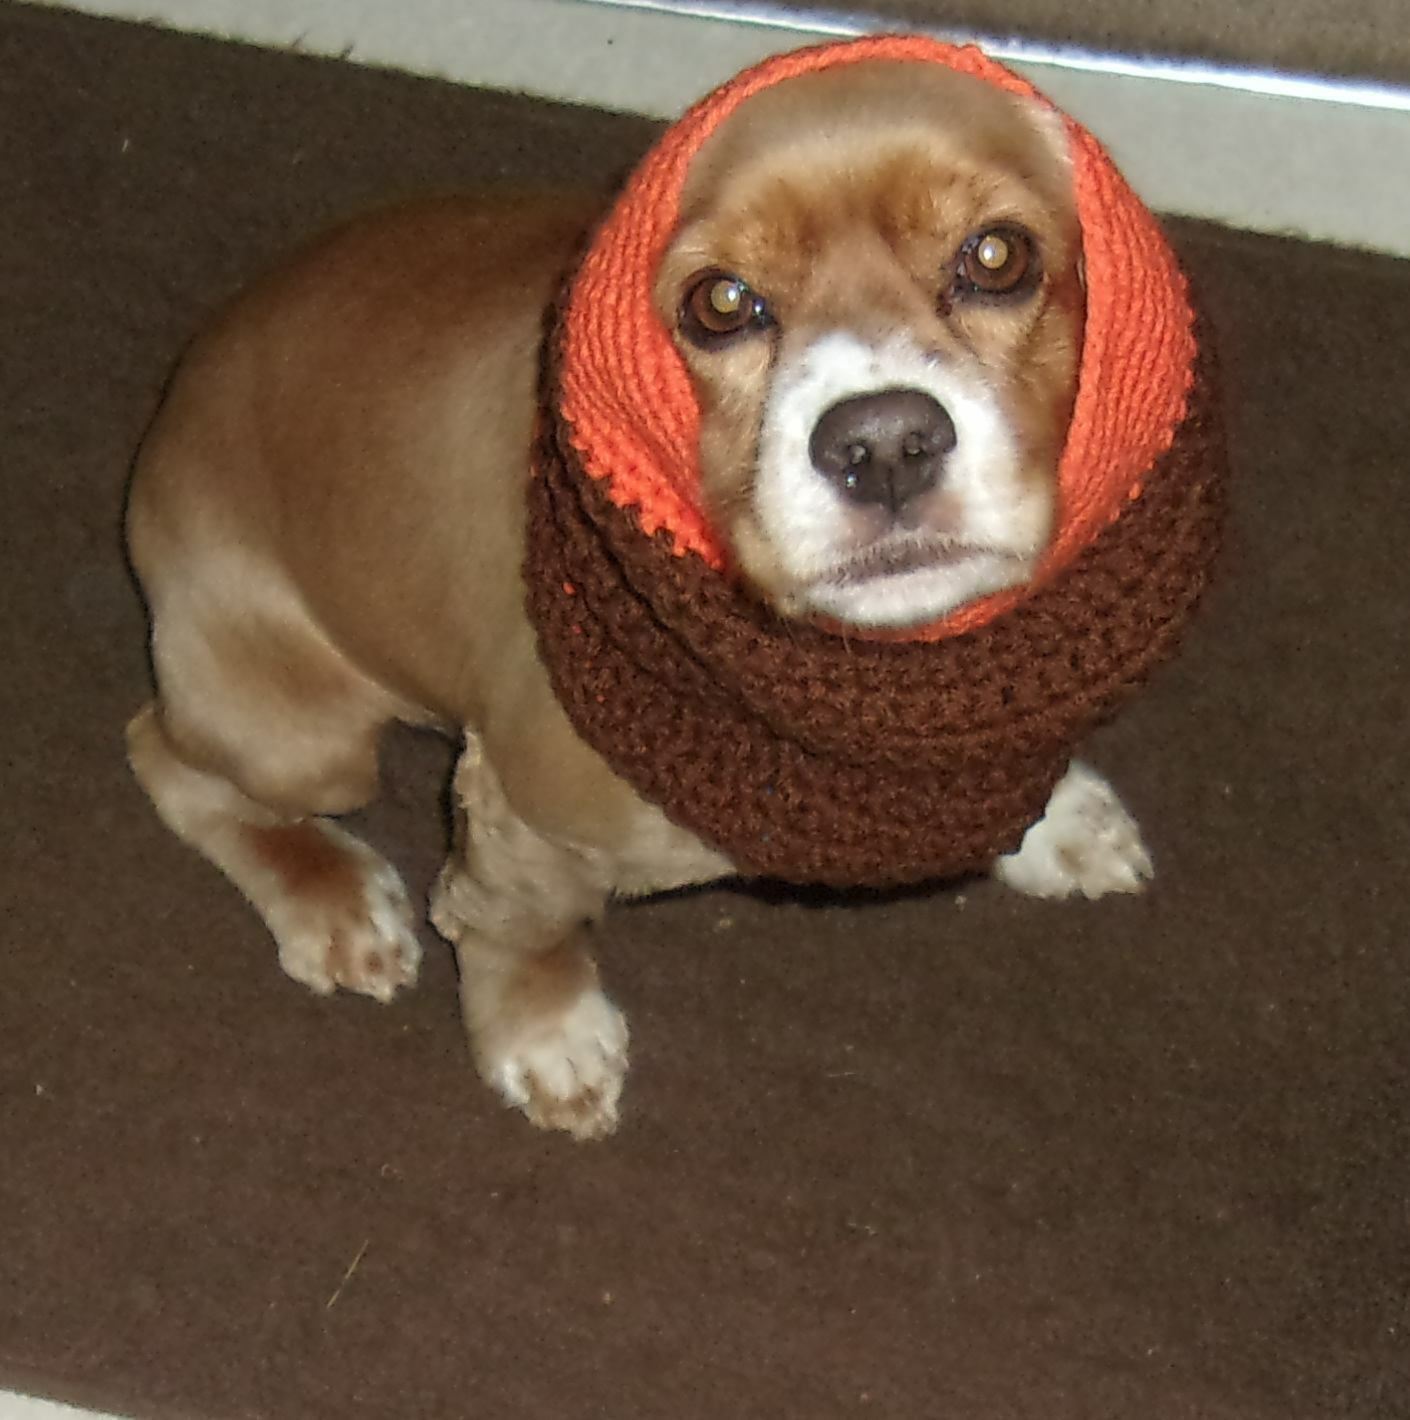 Brand New Hand Crocheted Brown Orange Dog Snood Neck Warmer 4 Dog Rescue Charity